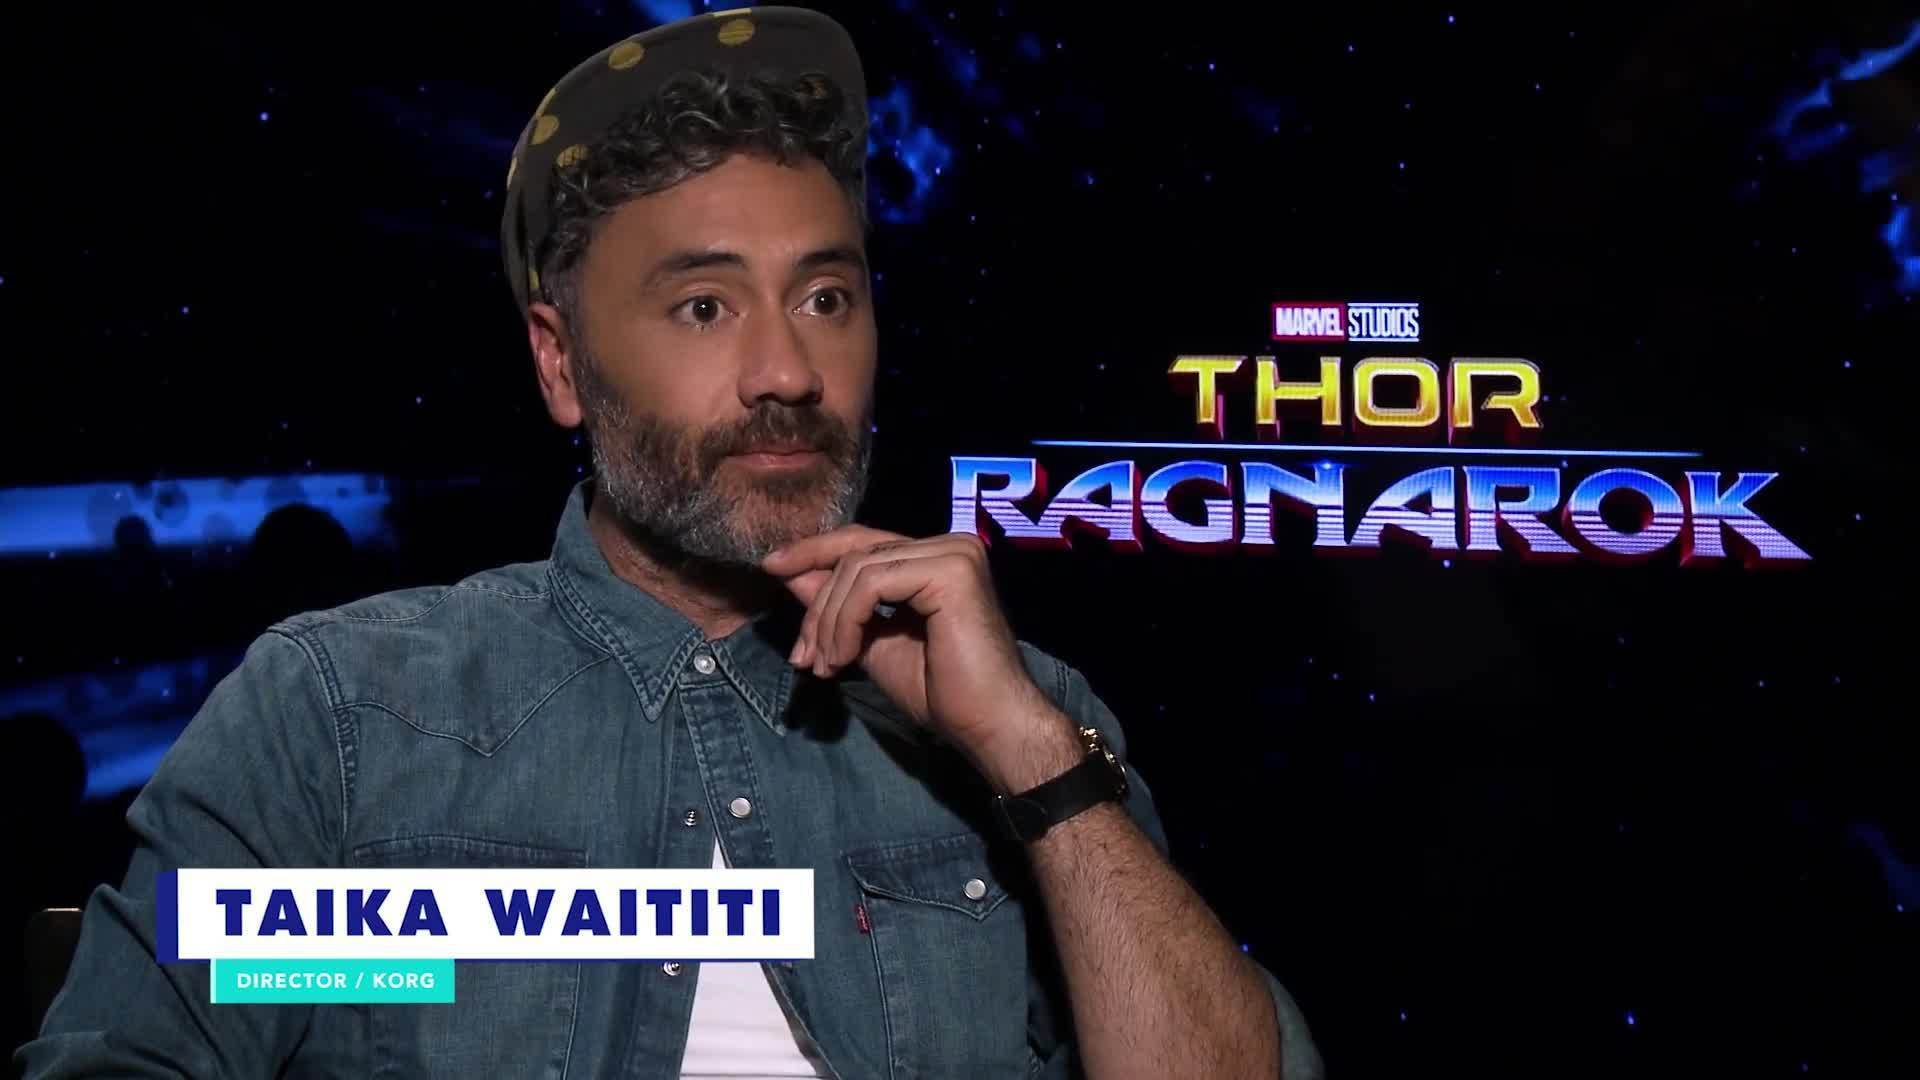 Taika Waititi Talks About Directing Thor: Ragnarok | Oh My Disney Show